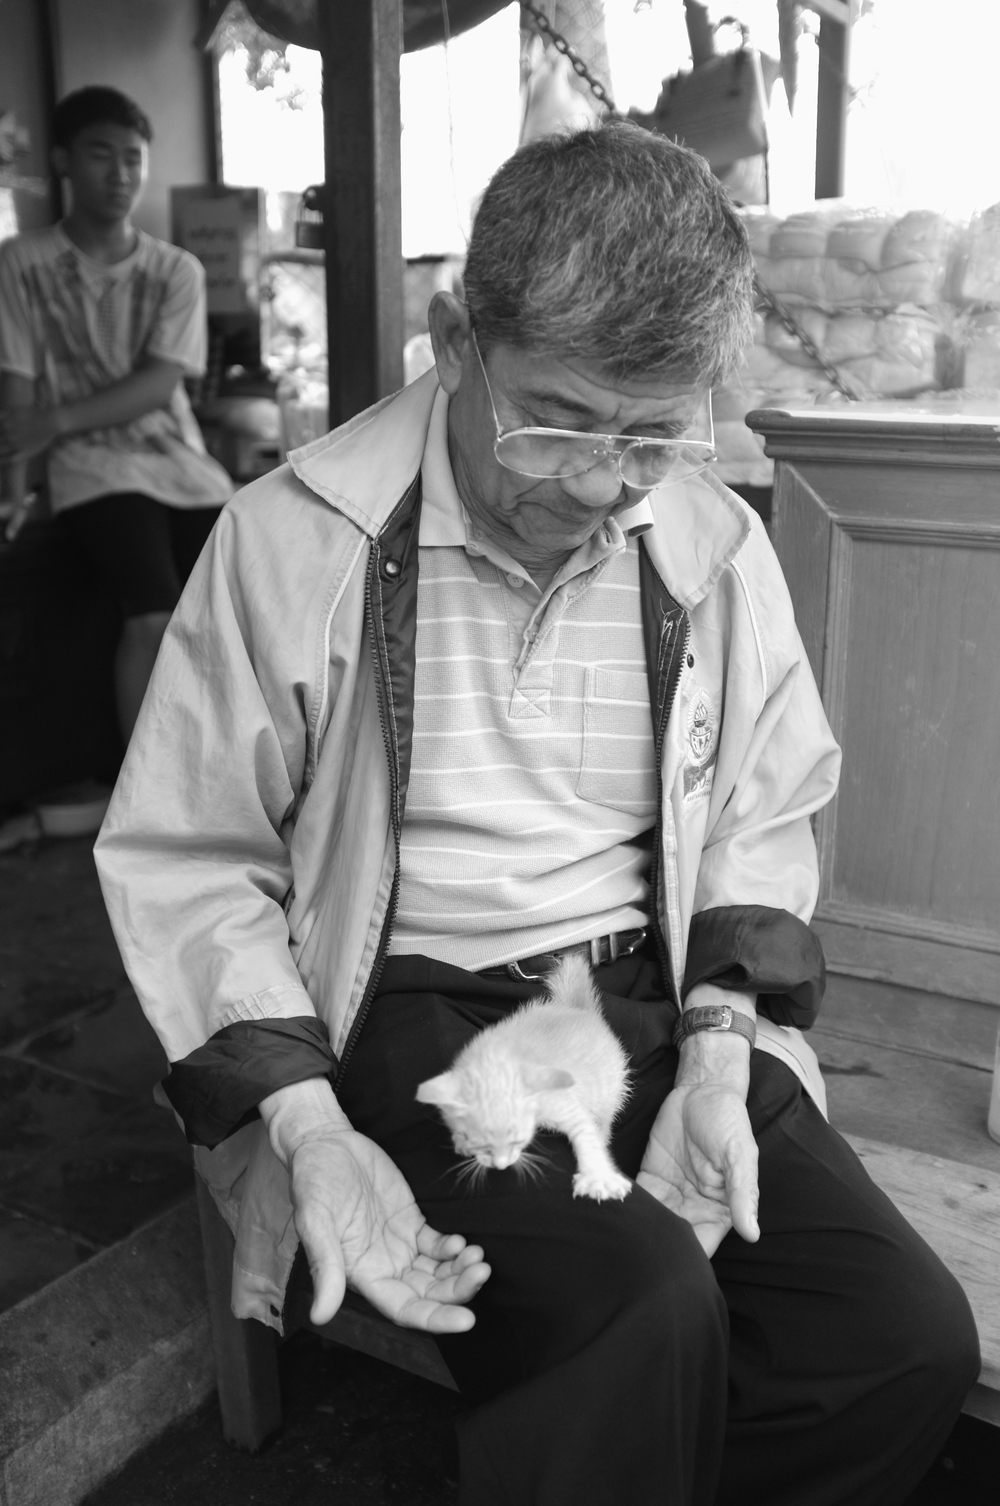 The Old Man and the Kitten